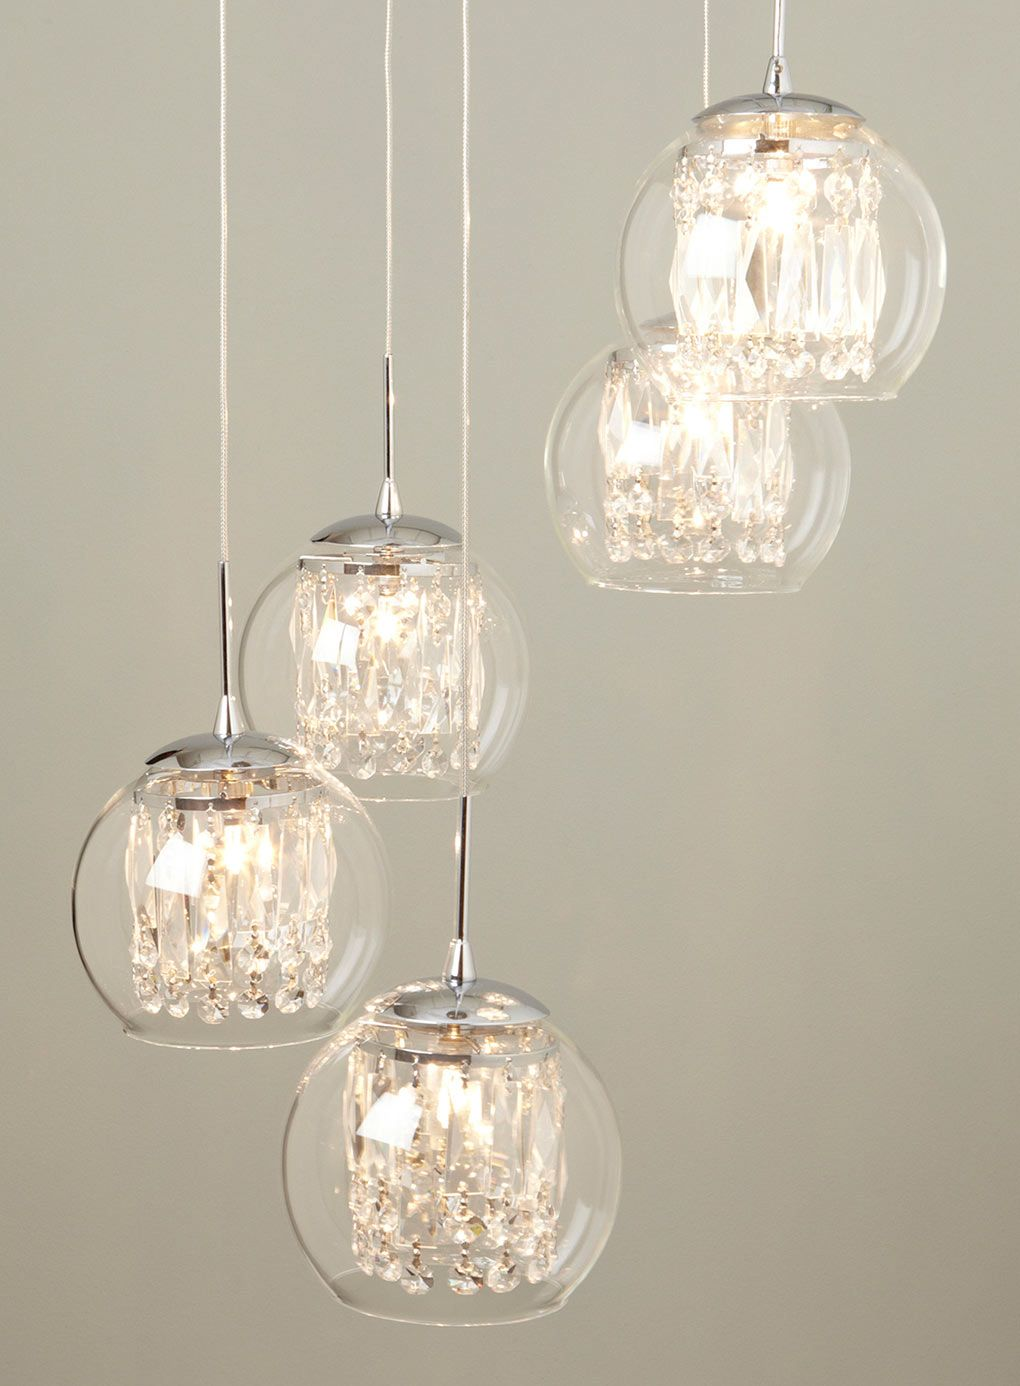 This is exactly what i want shame this is a link for a glass crystal spiral pendant chandelier ceiling lights home lighting bhs aloadofball Gallery